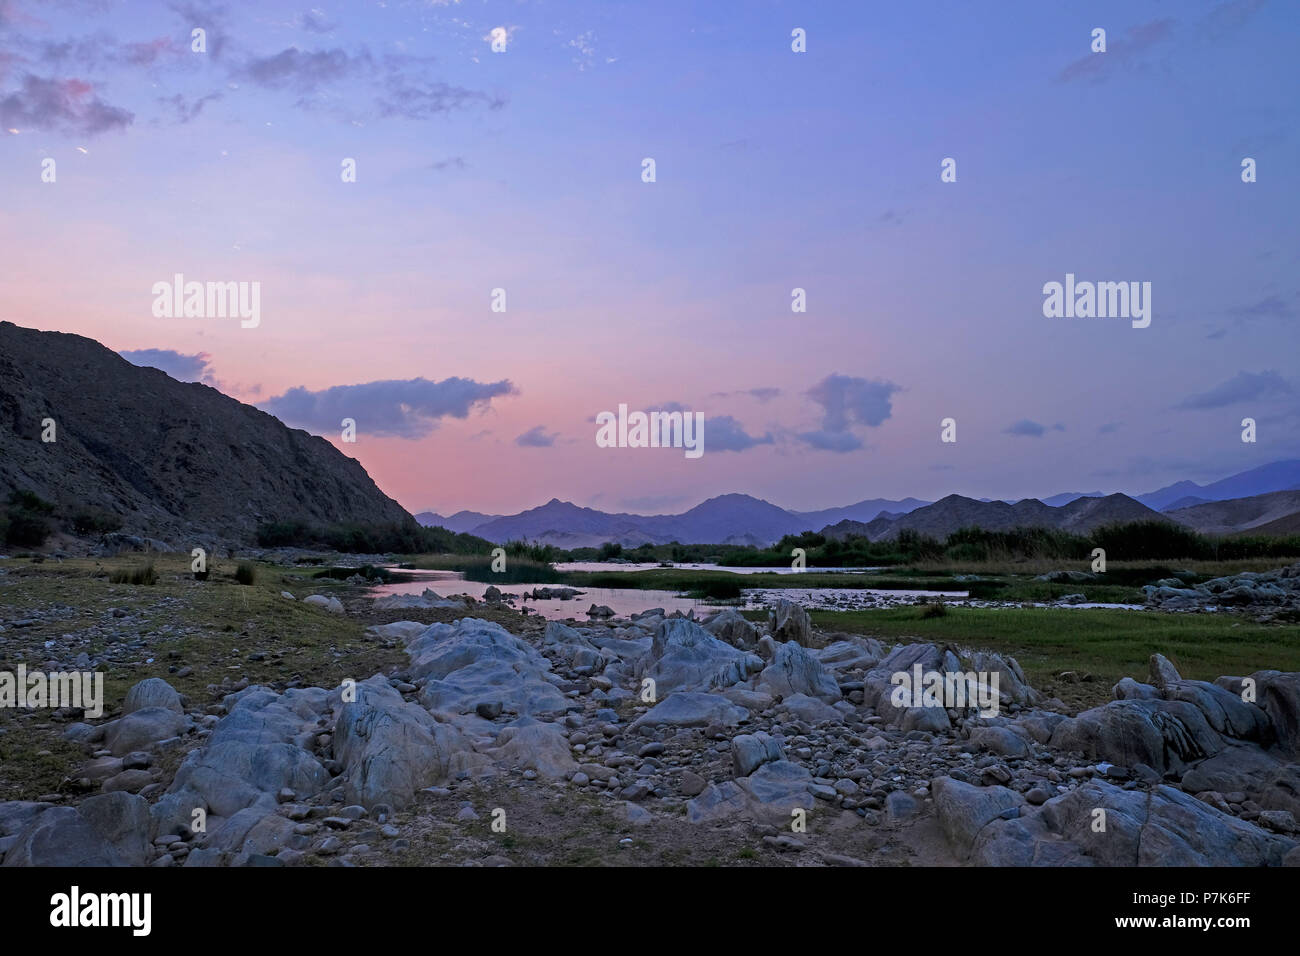 stony river bed of the Orange River / Oranjerivier (border river) in Richtersveld at evening mood, opposite side of Namibia, Namaqua, South Africa Stock Photo